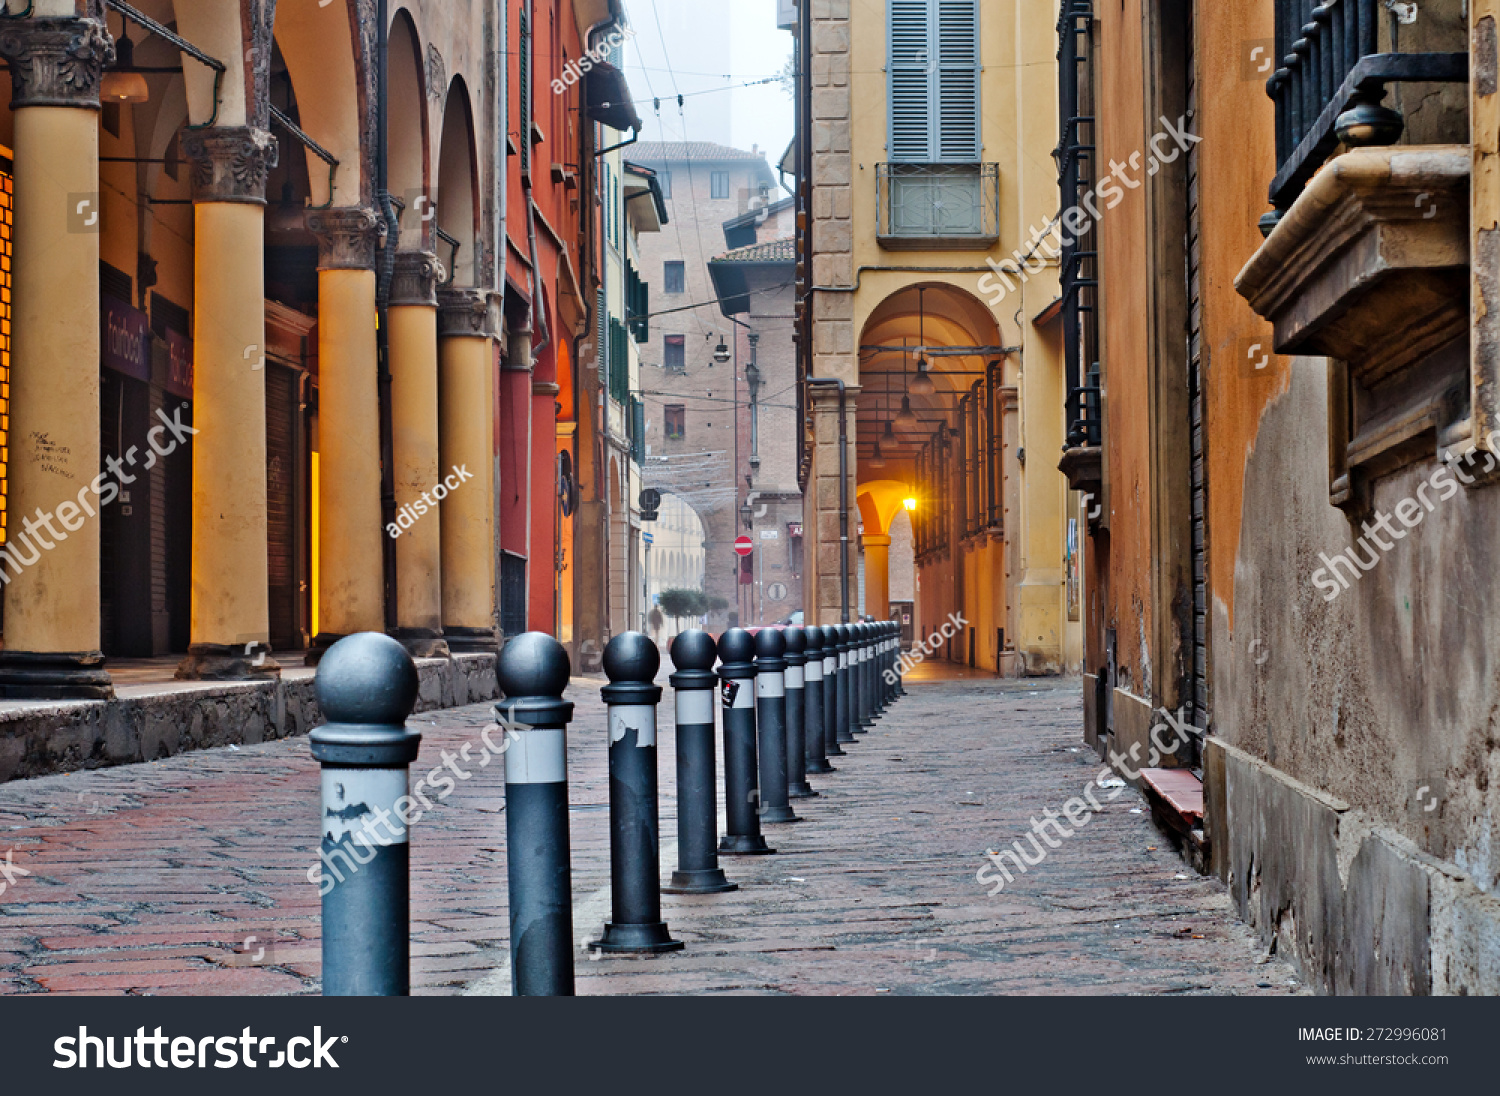 Old Street View Bologna City Italy Cobble Stone Street With Bollards